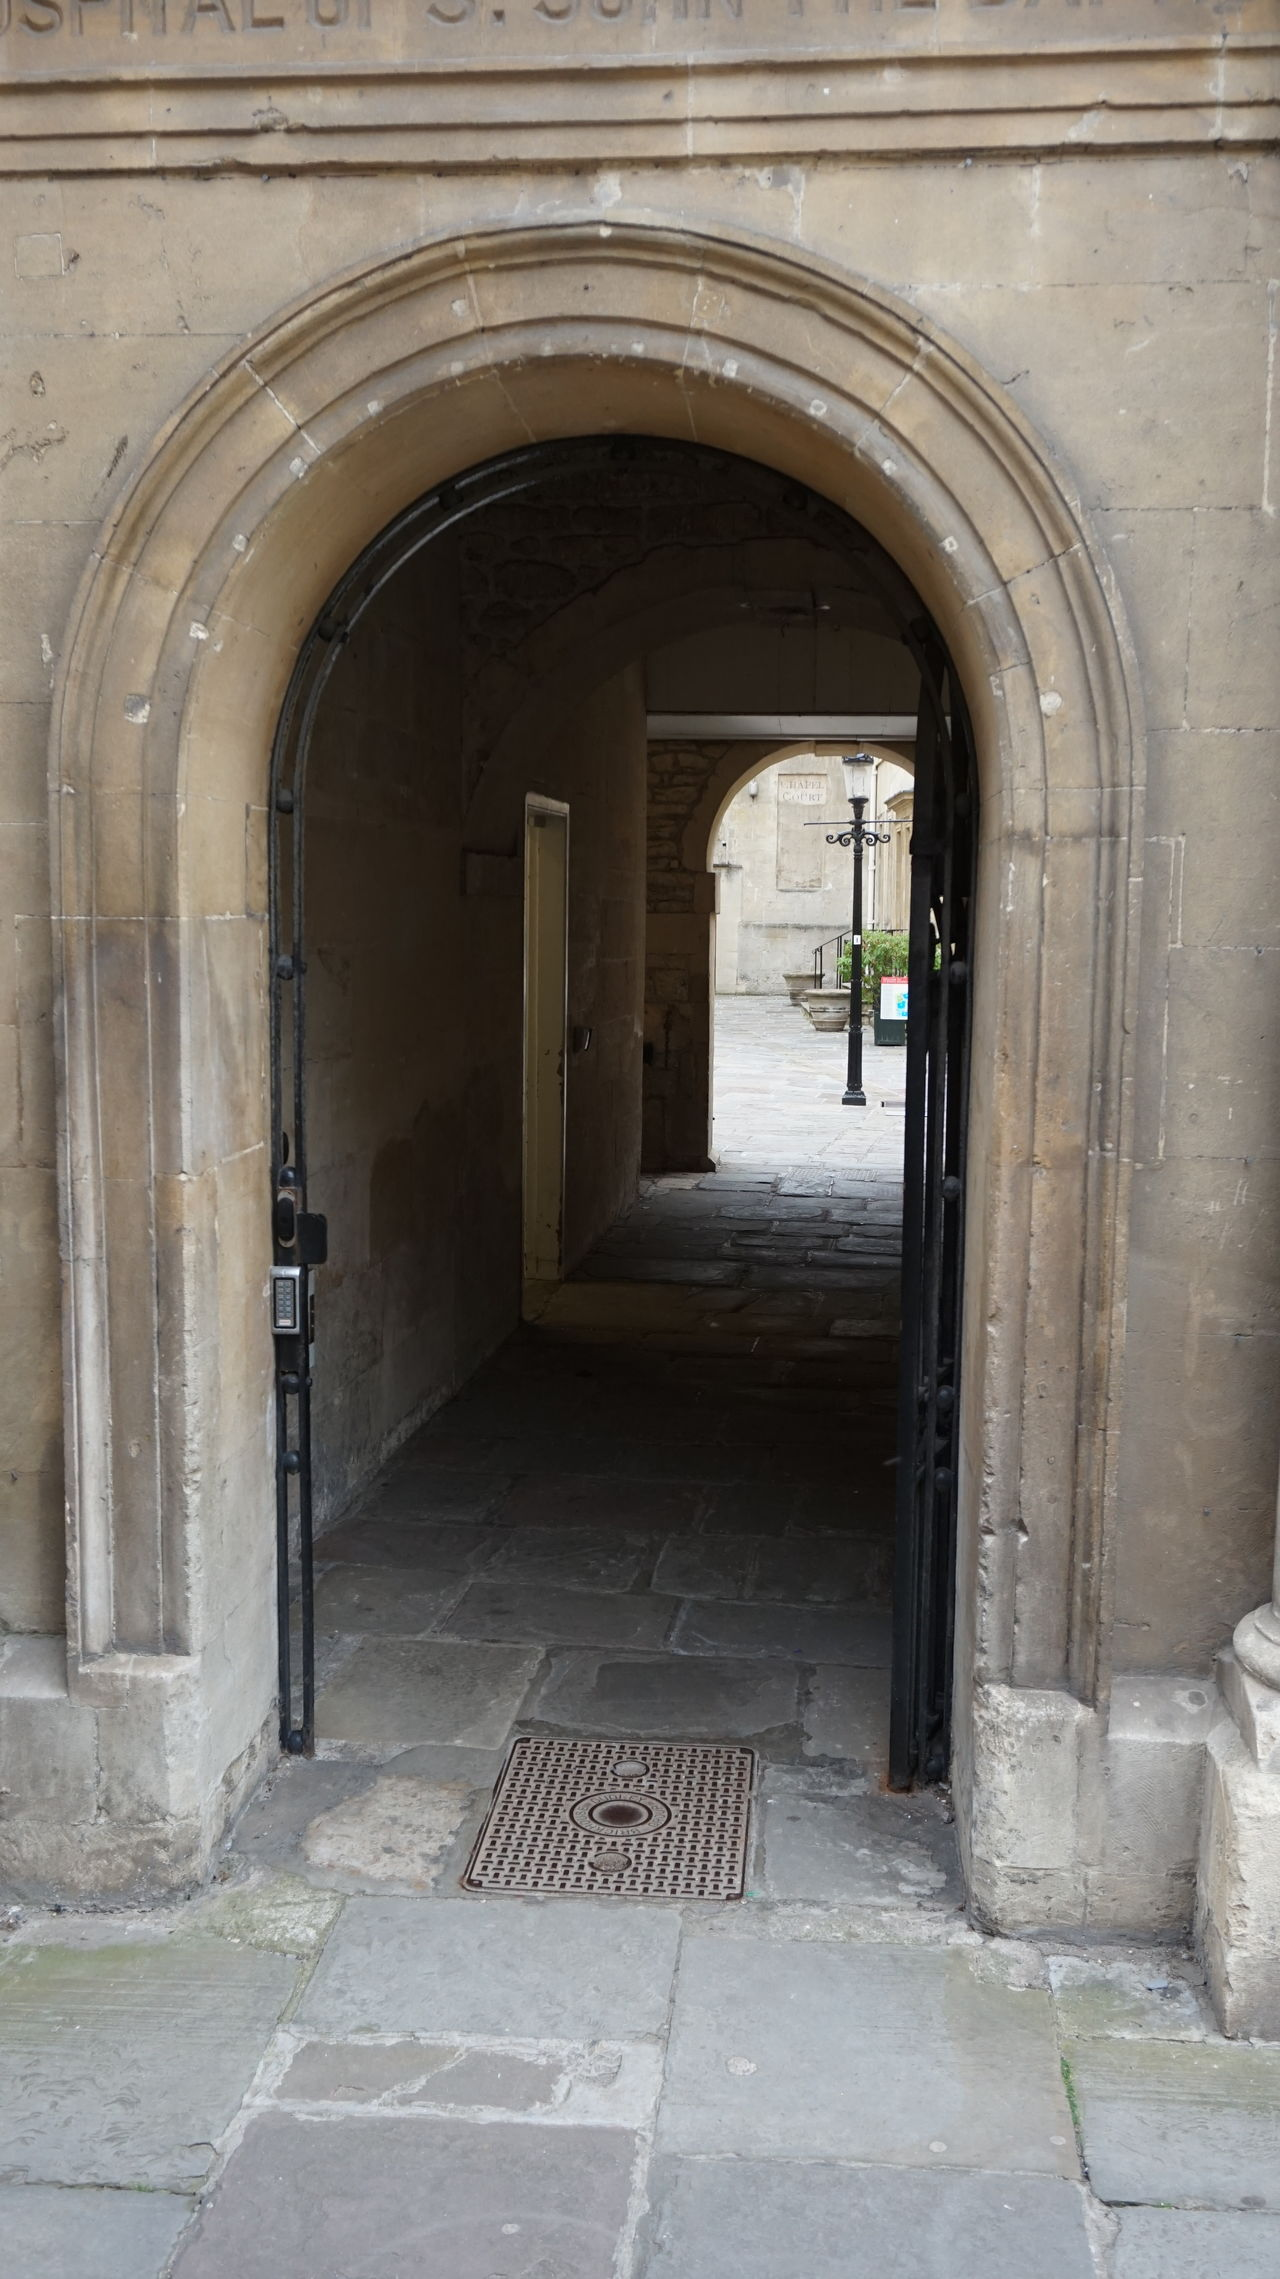 Architecture Arch Stone Work Brick Work Arch Way Pathway Flag Stones Archway Leading To Square Stone Planters Metal Gate Classic Architecture Bath City Bath City Centre Stone Carving Doorway Lamppost Lamp Post Black